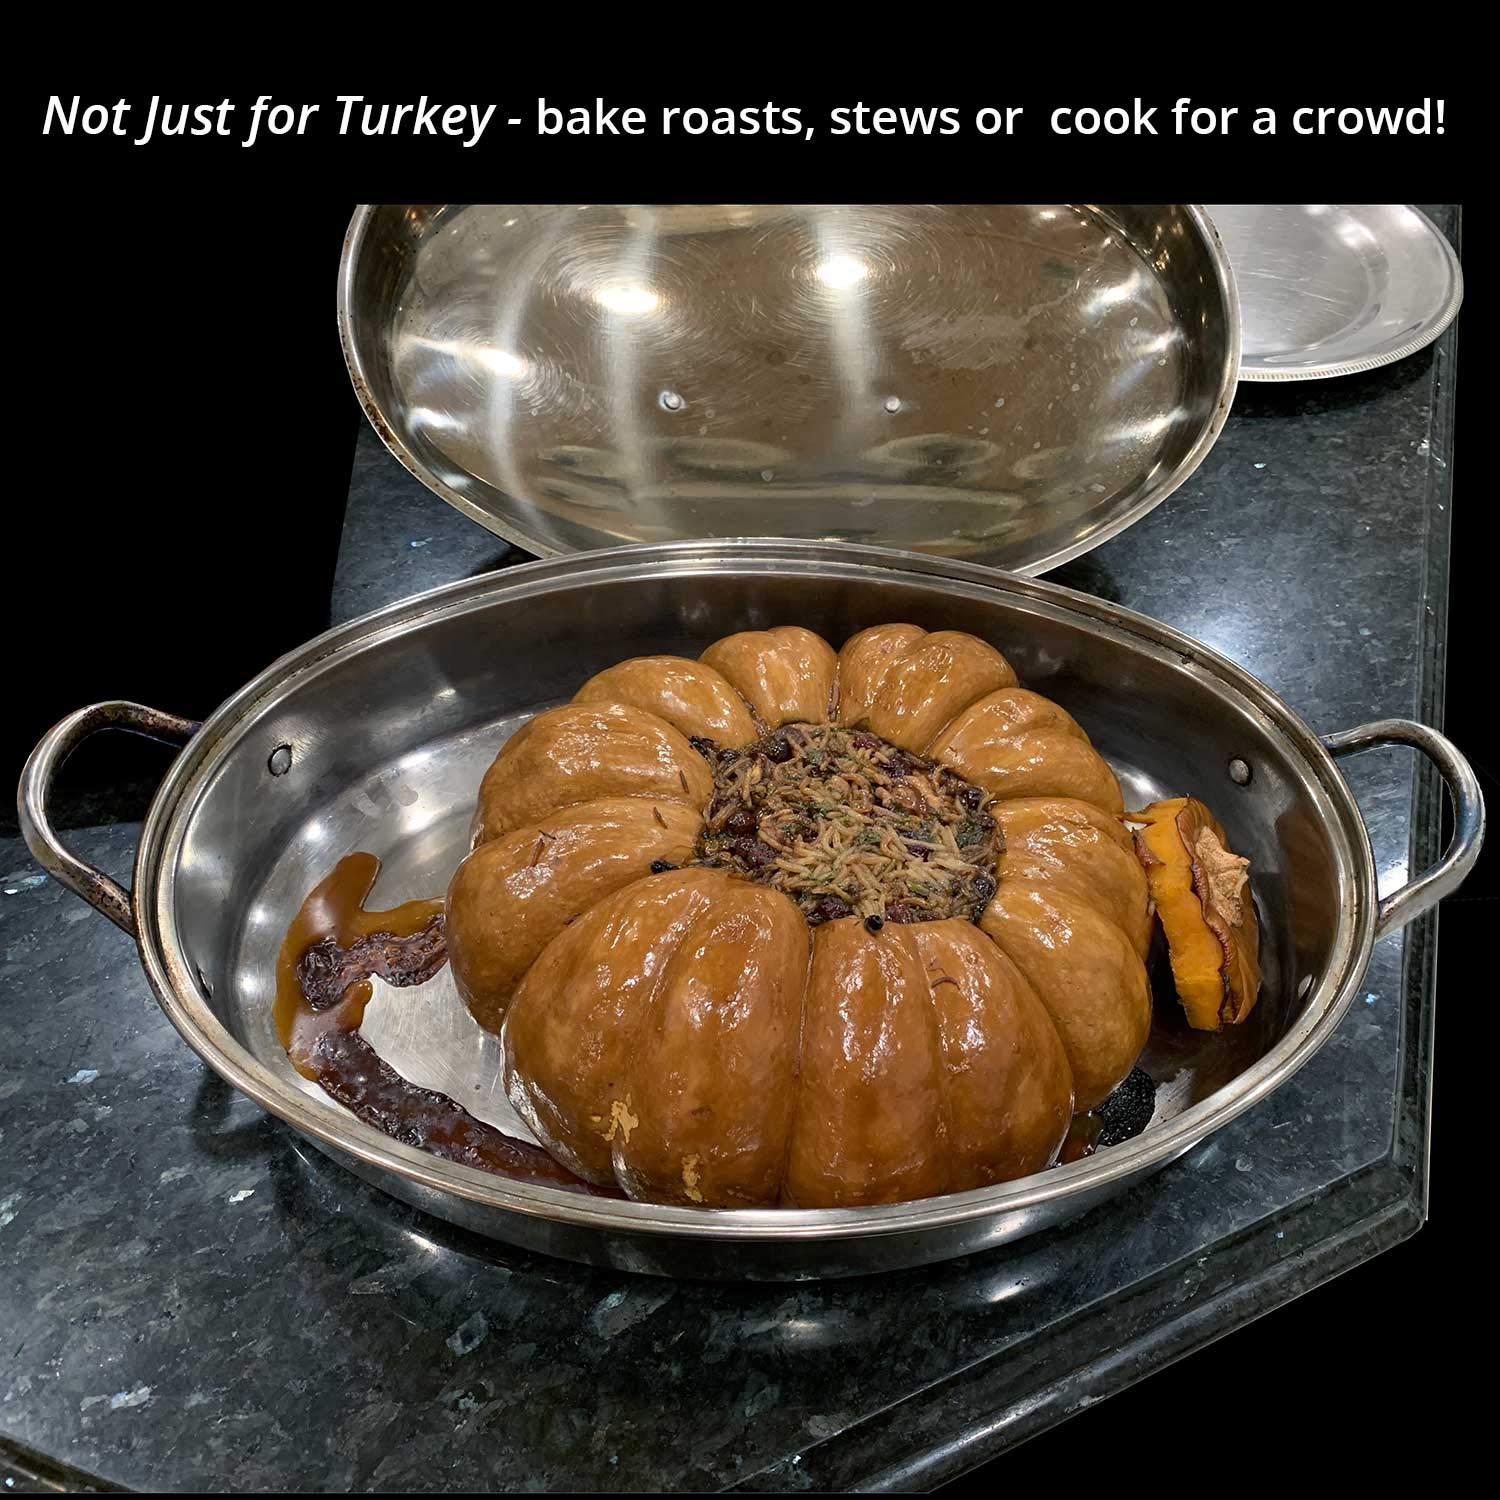 Stainless Steel Oval Lidded Roaster Pan Extra Large & Lightweight | With Induction Lid & Wire Rack | Multi-Purpose Oven Cookware High Dome | Meat Joints Chicken Vegetables 9.5 Quart Capacity by LavoHome (Image #7)